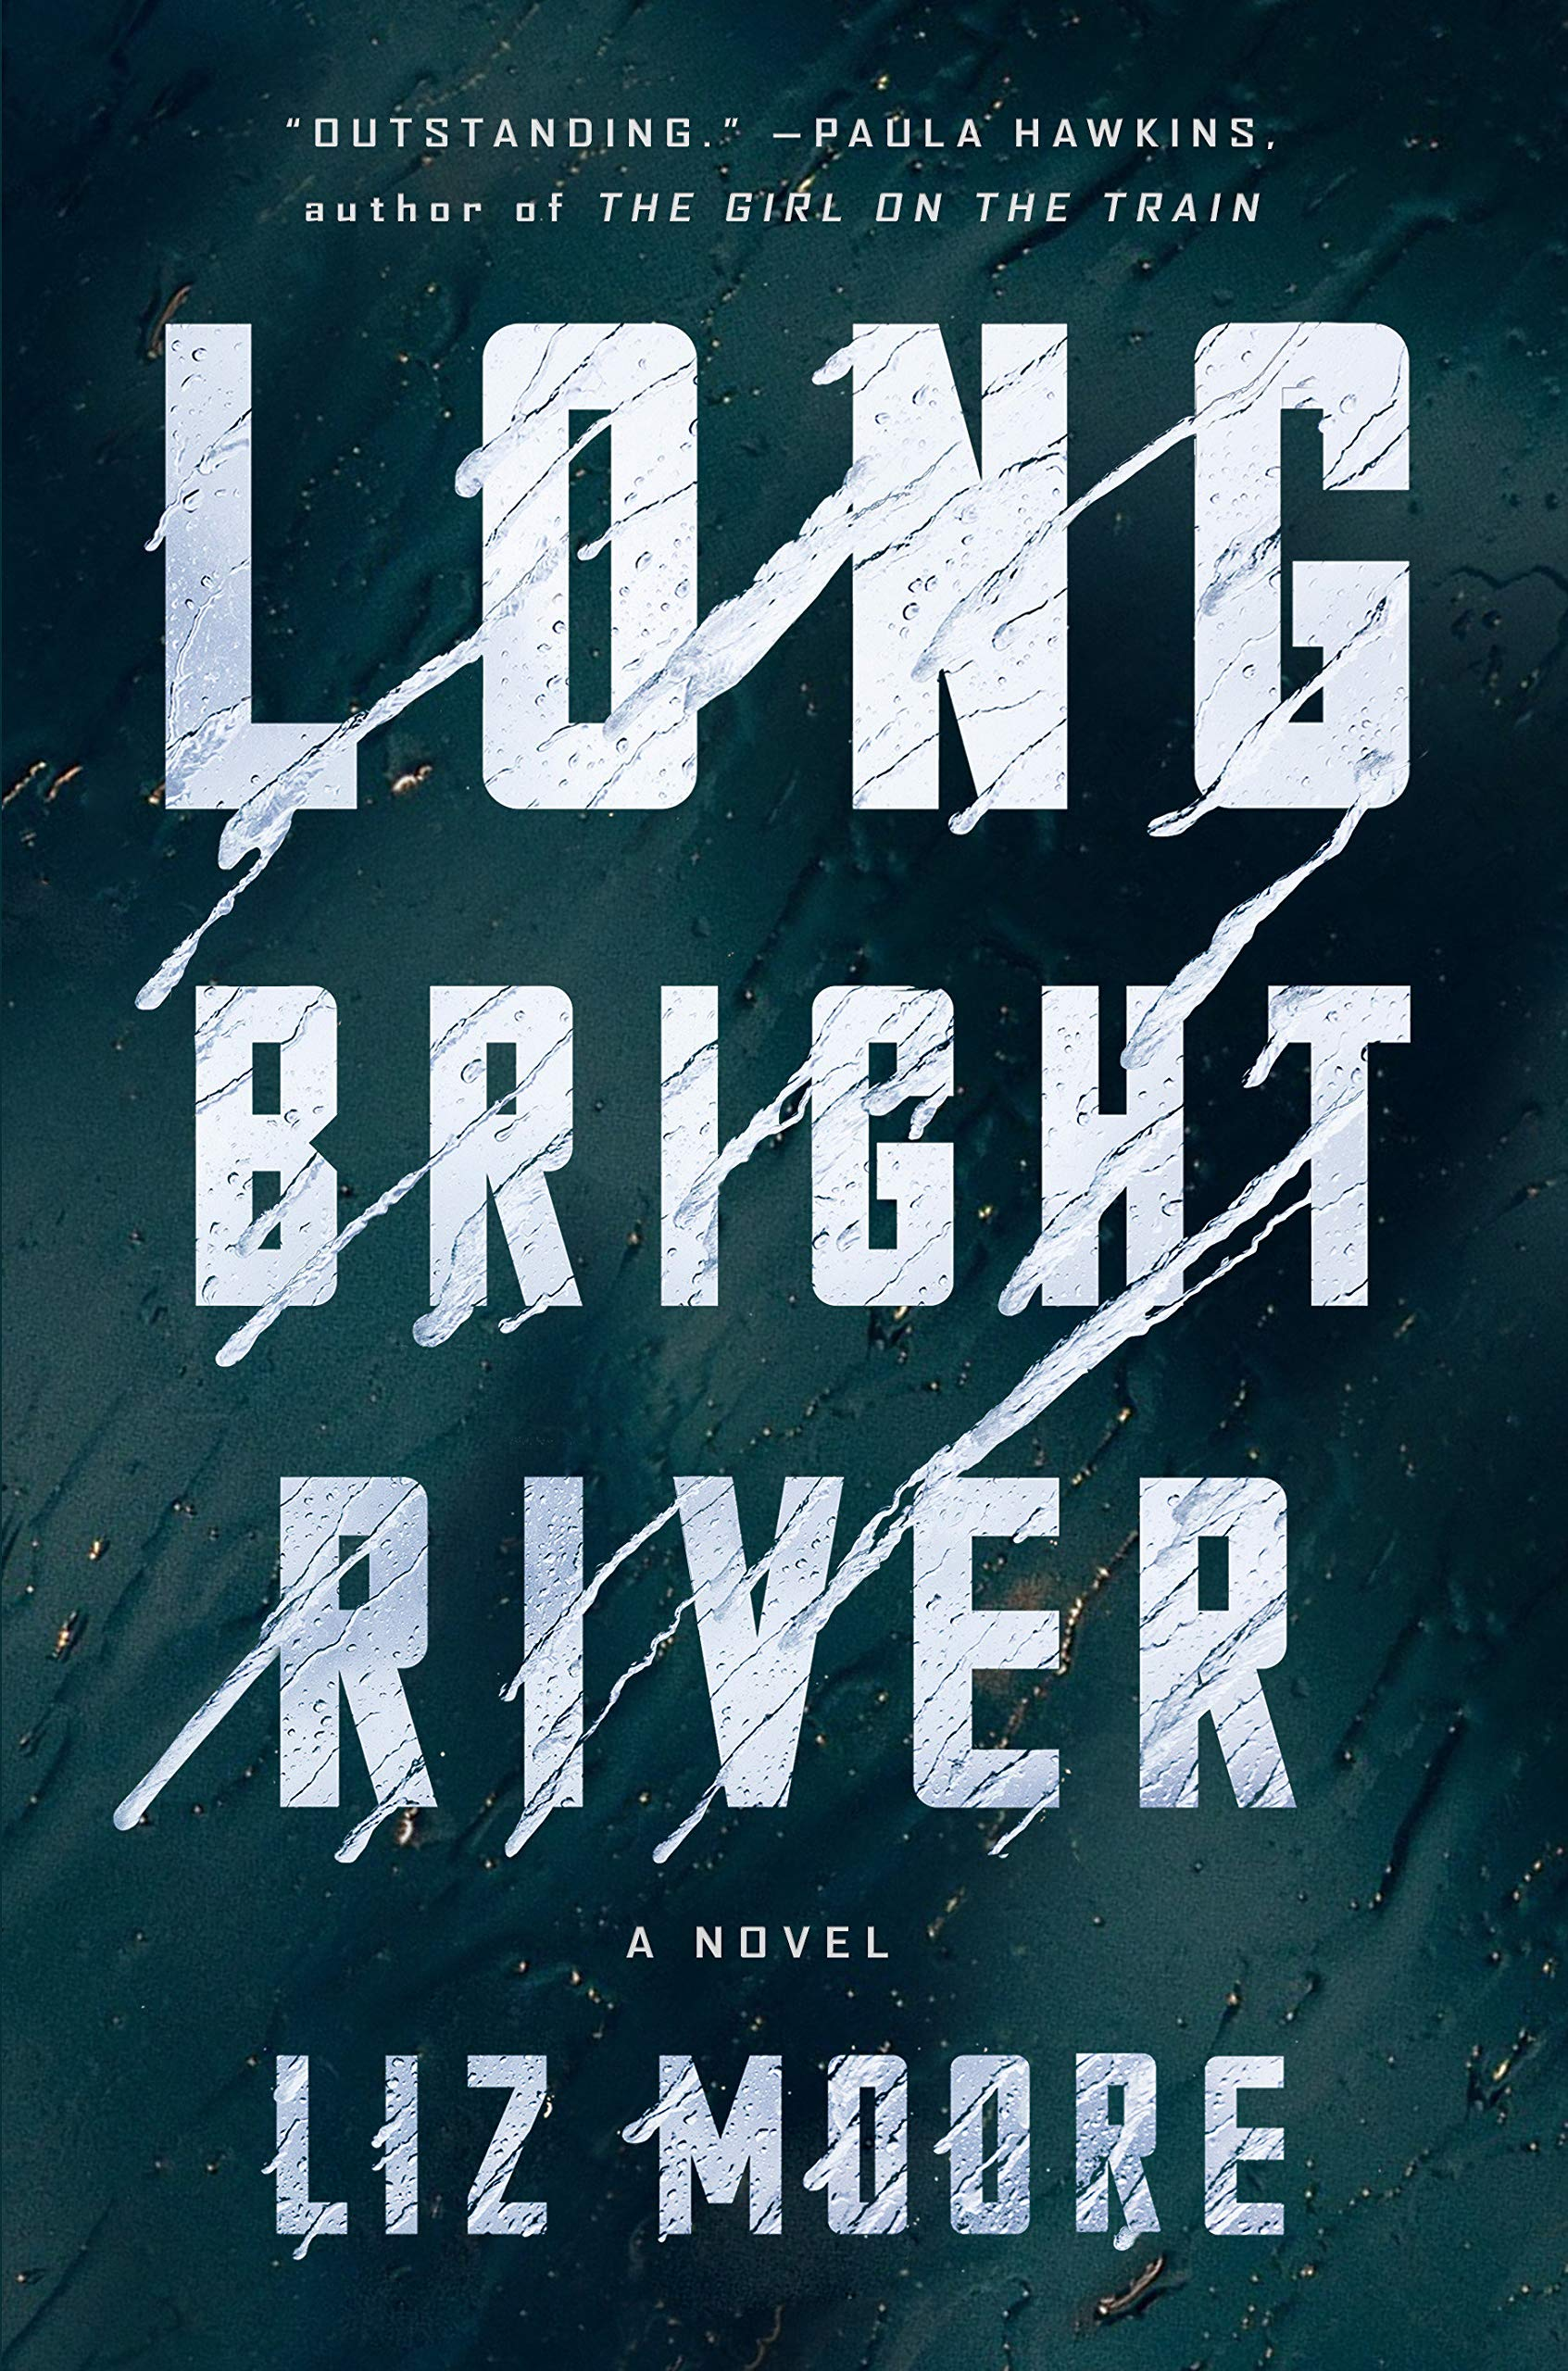 Long Bright River 2020 book releases